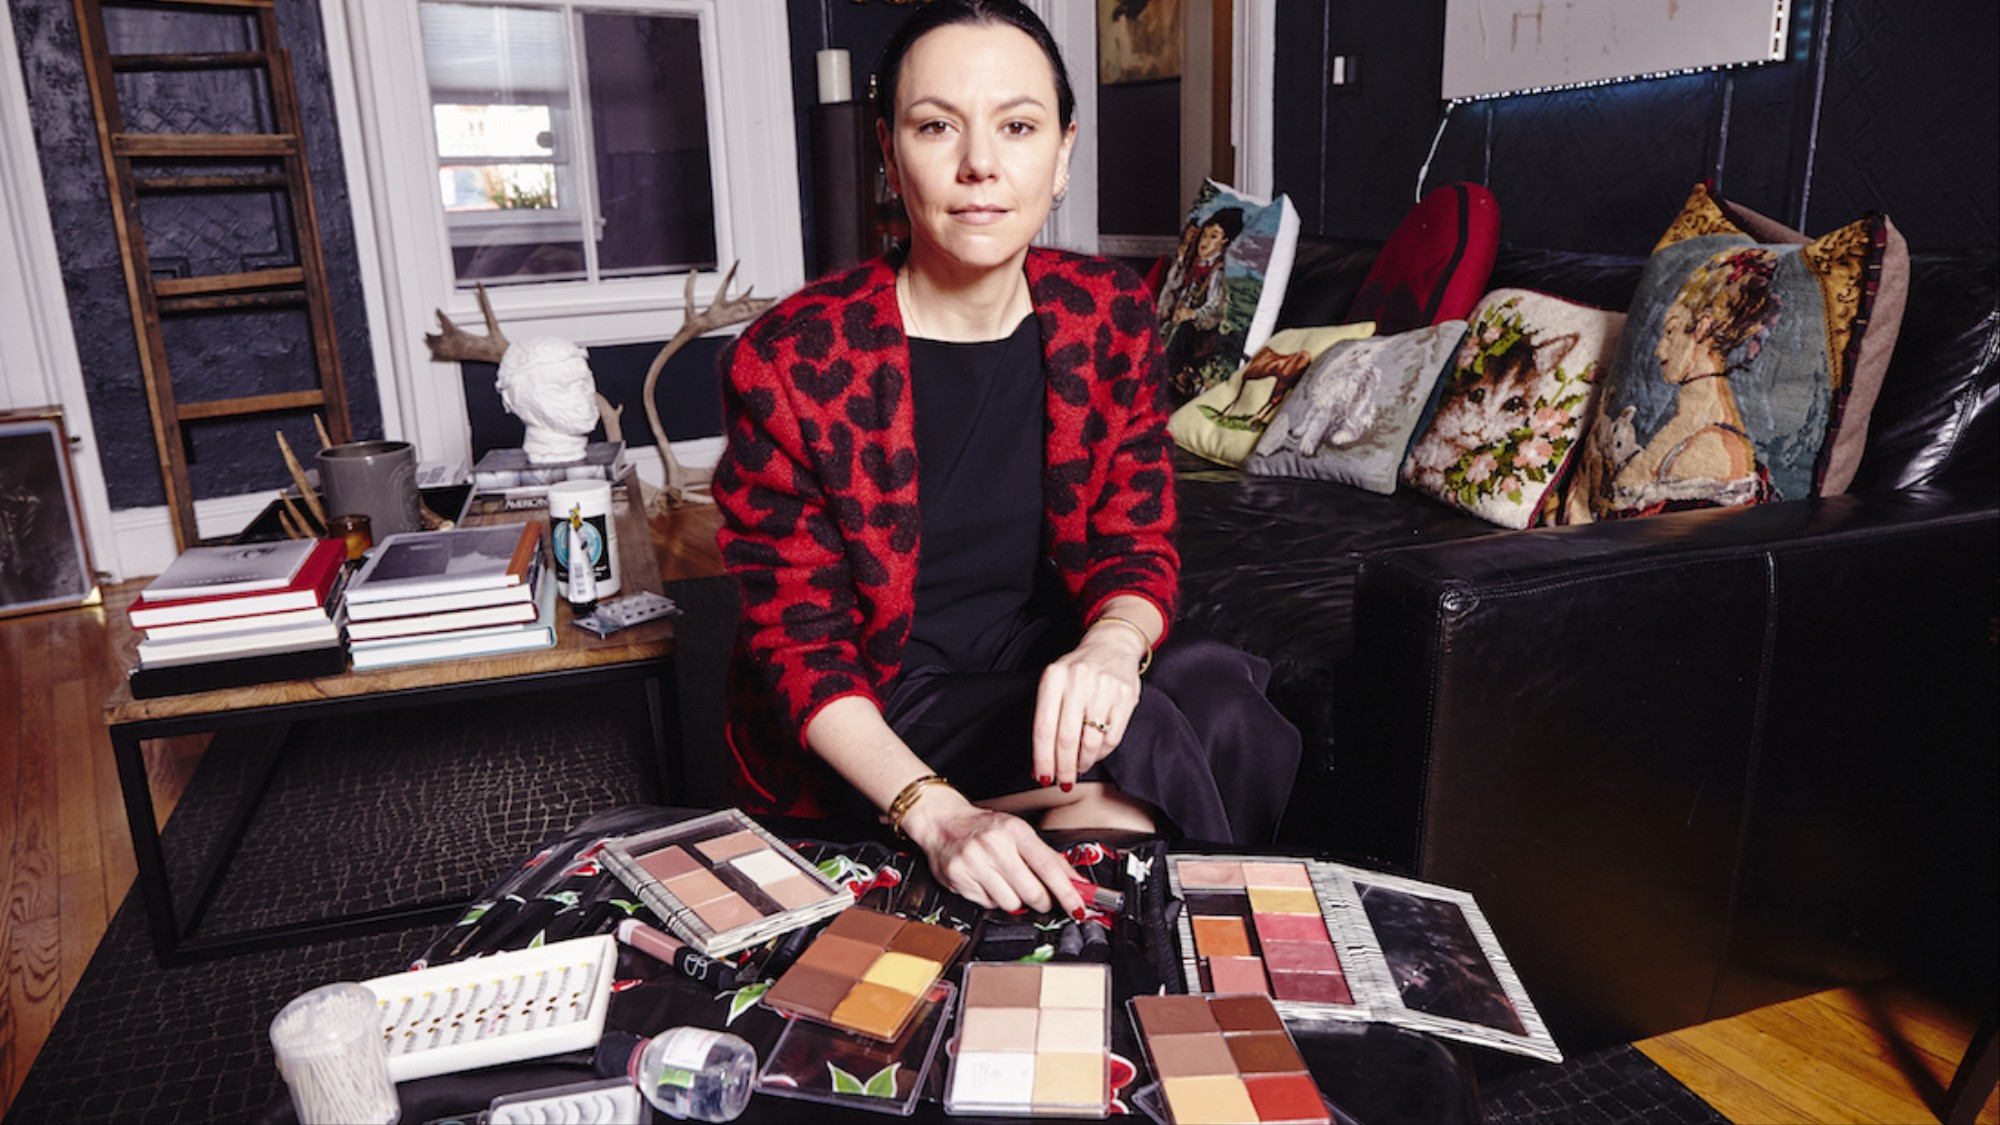 francelle daly on amazon beauty finds and growing up goth